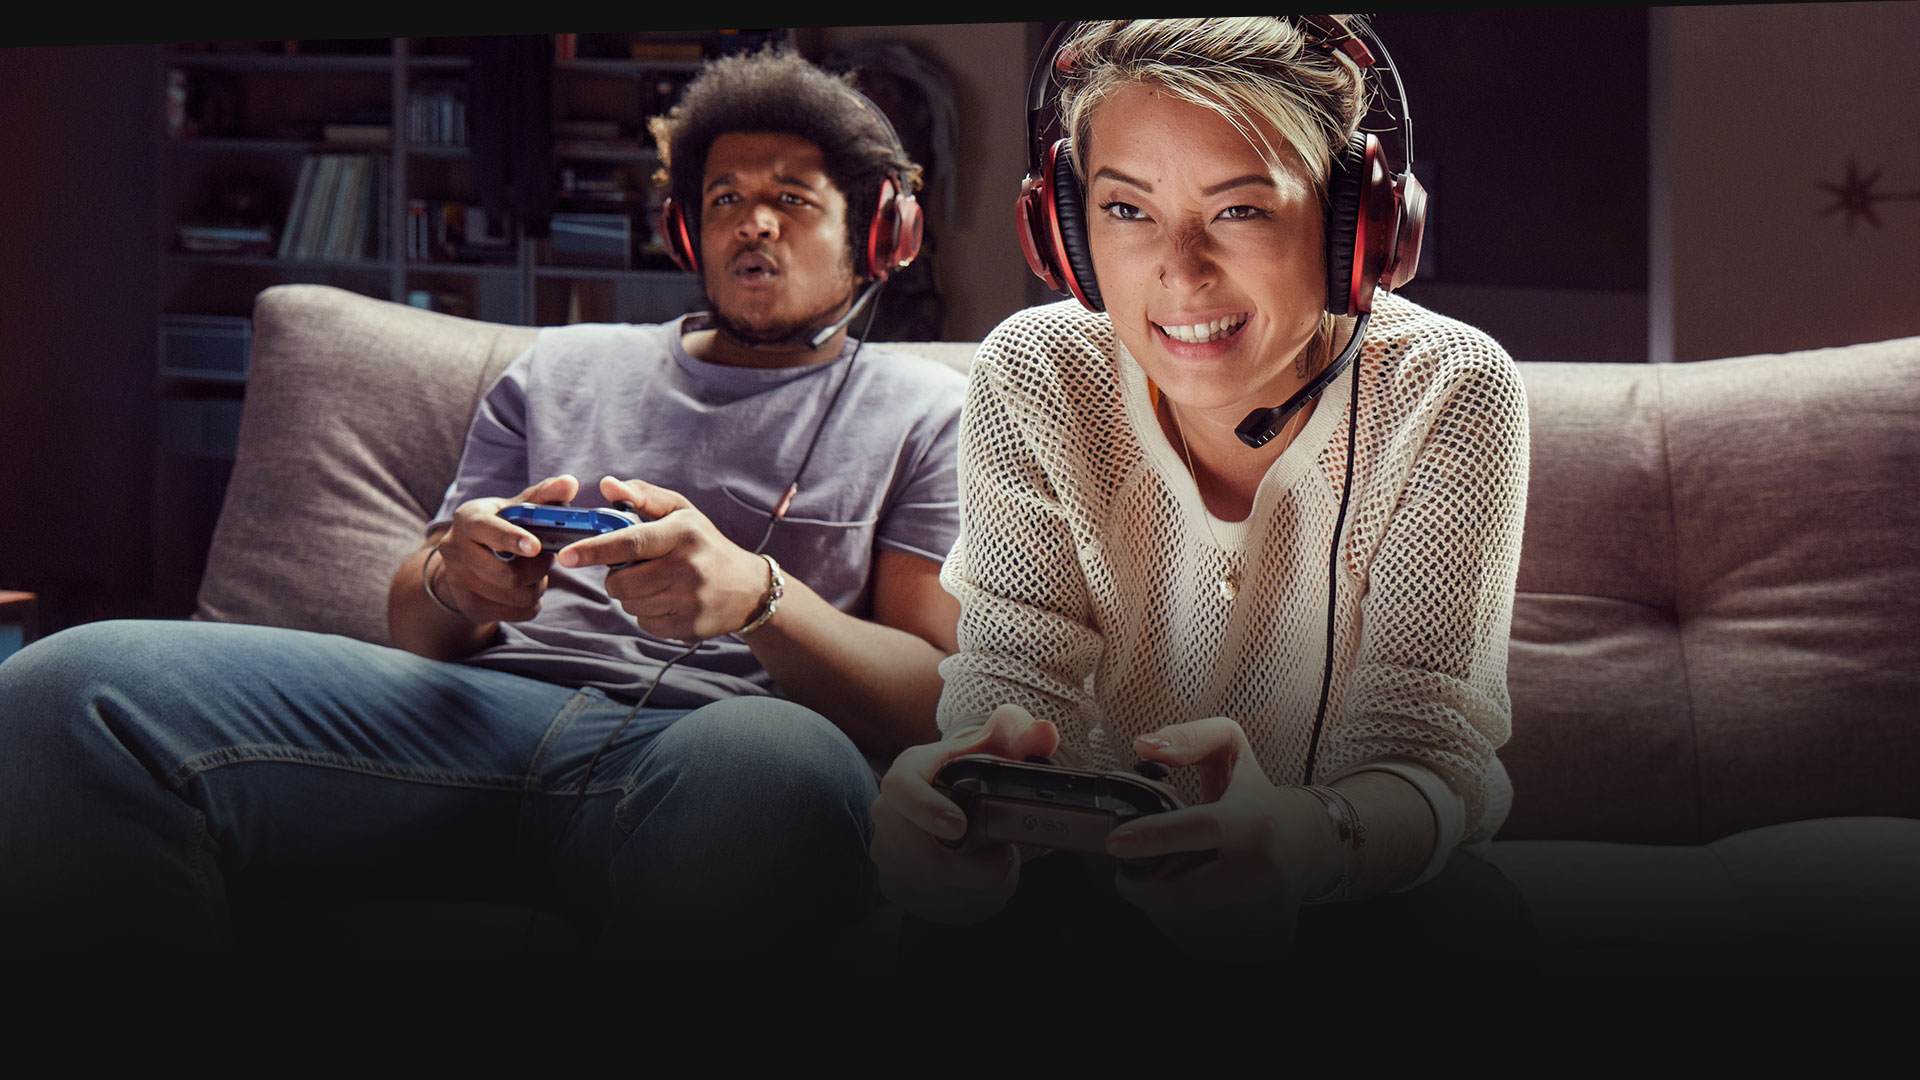 Two people wearing headsets playing Xbox one on a sofa